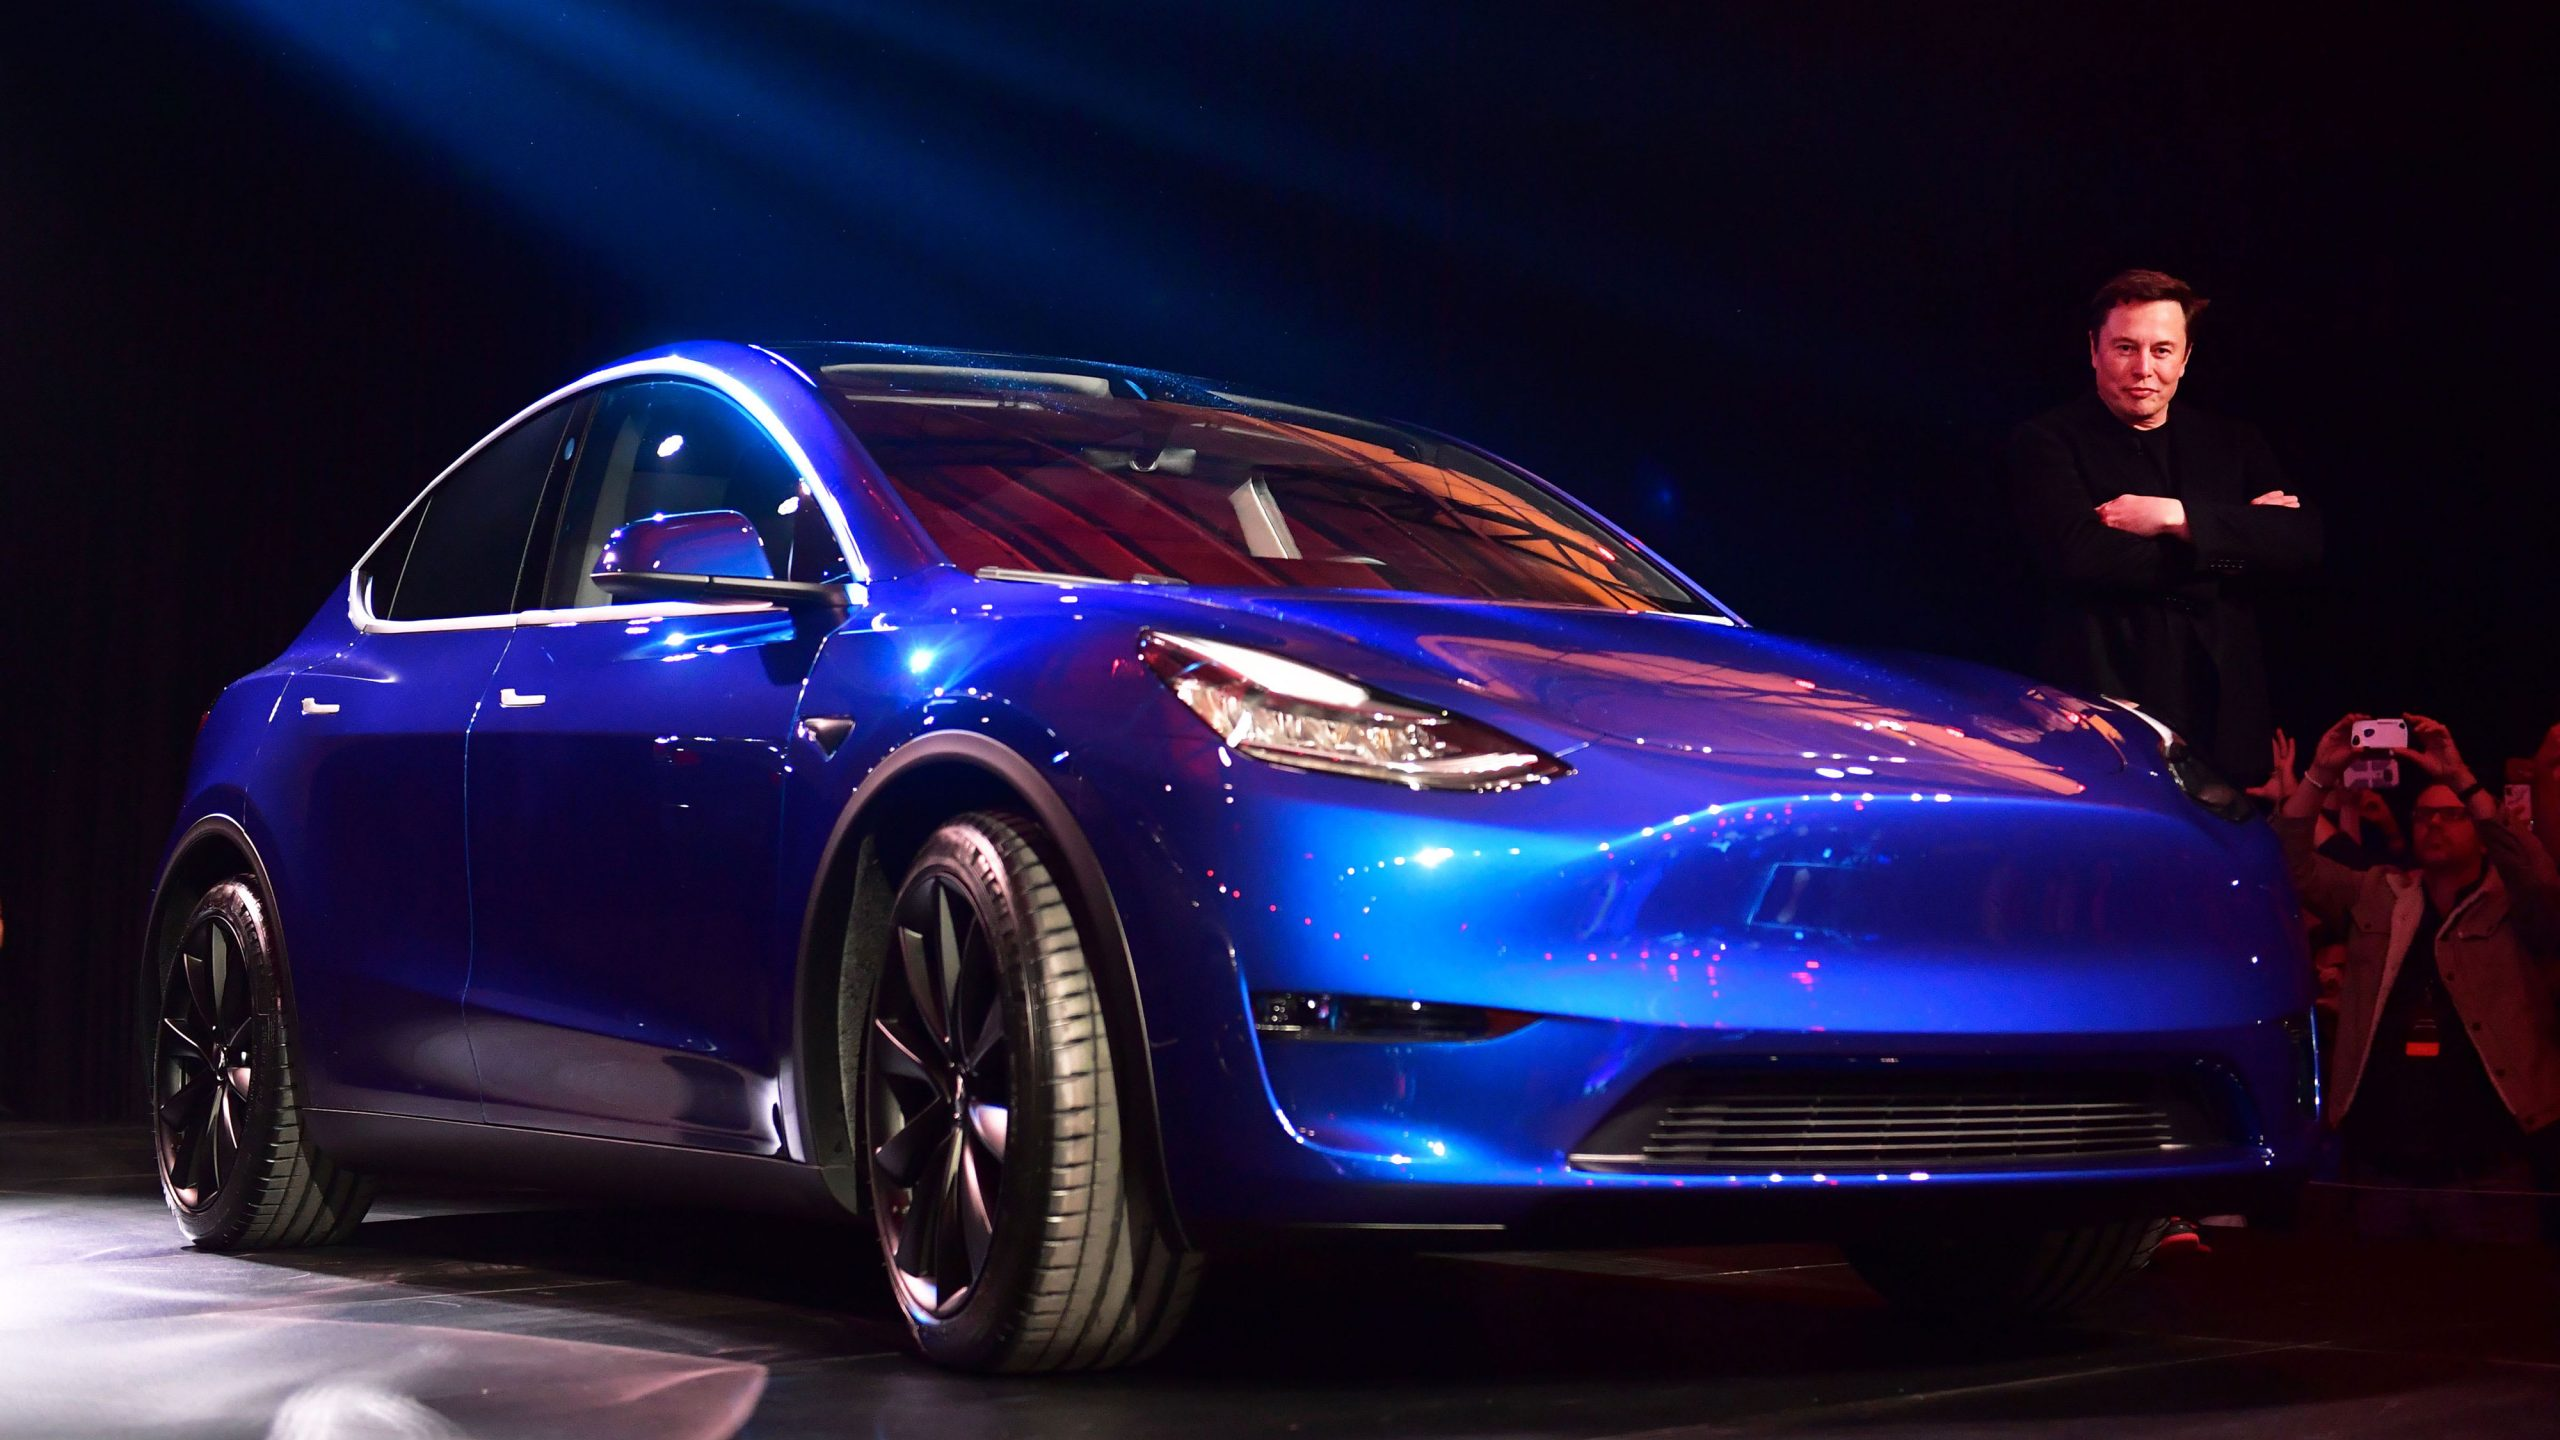 Tesla is poised to deliver Model Y crossover in first quarter of 2020, says Deutsche Bank